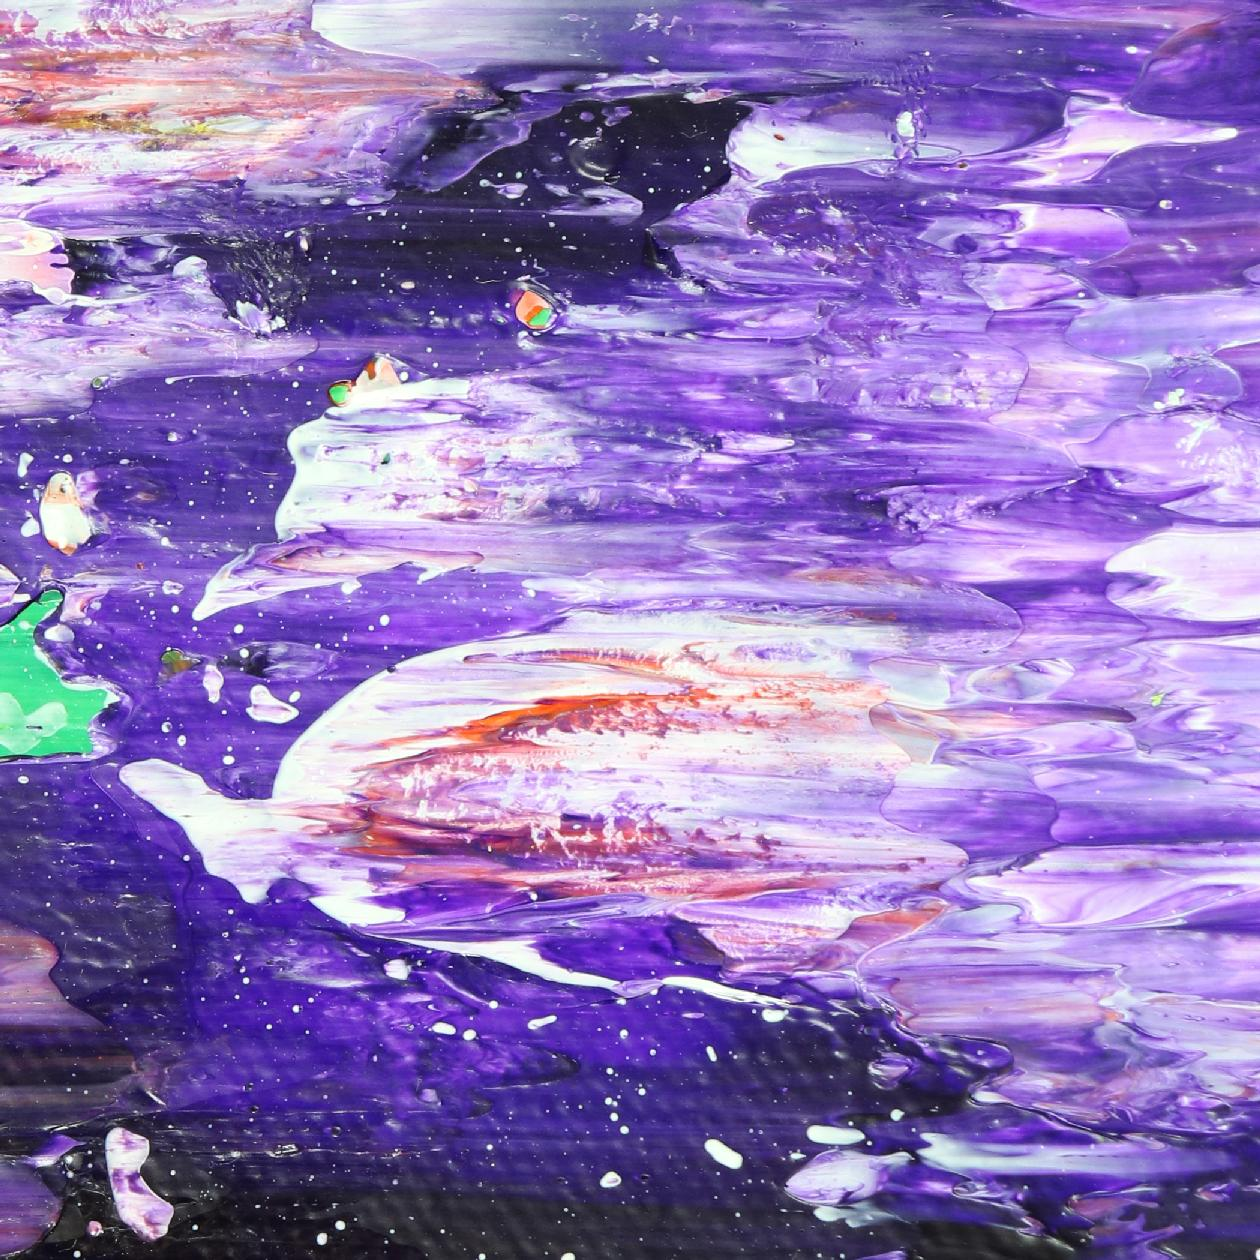 Mystery Garden ( In scarlet, purple and green) (2020) Abstract painting by Nestor Toro